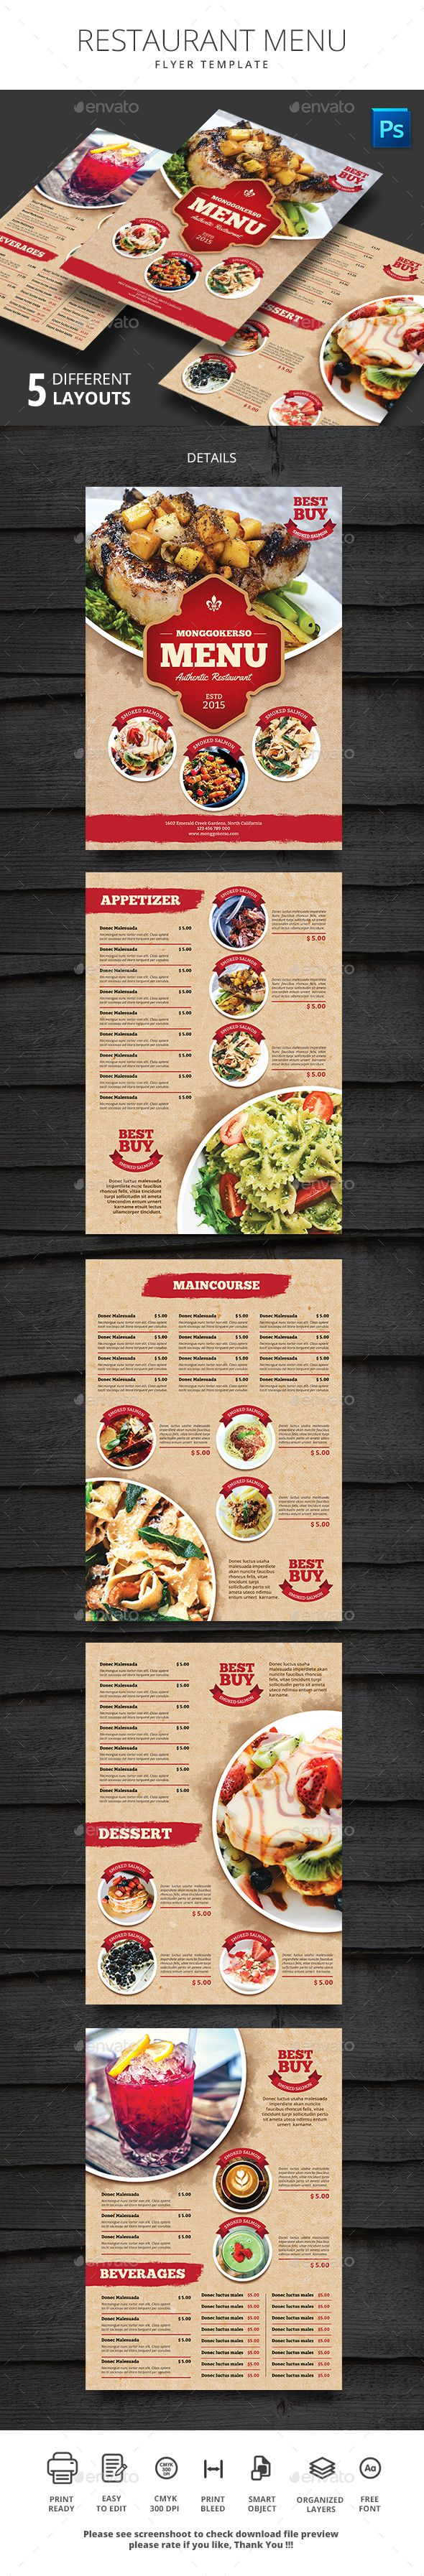 Restaurant Menu u2014 PSD Template menu templates